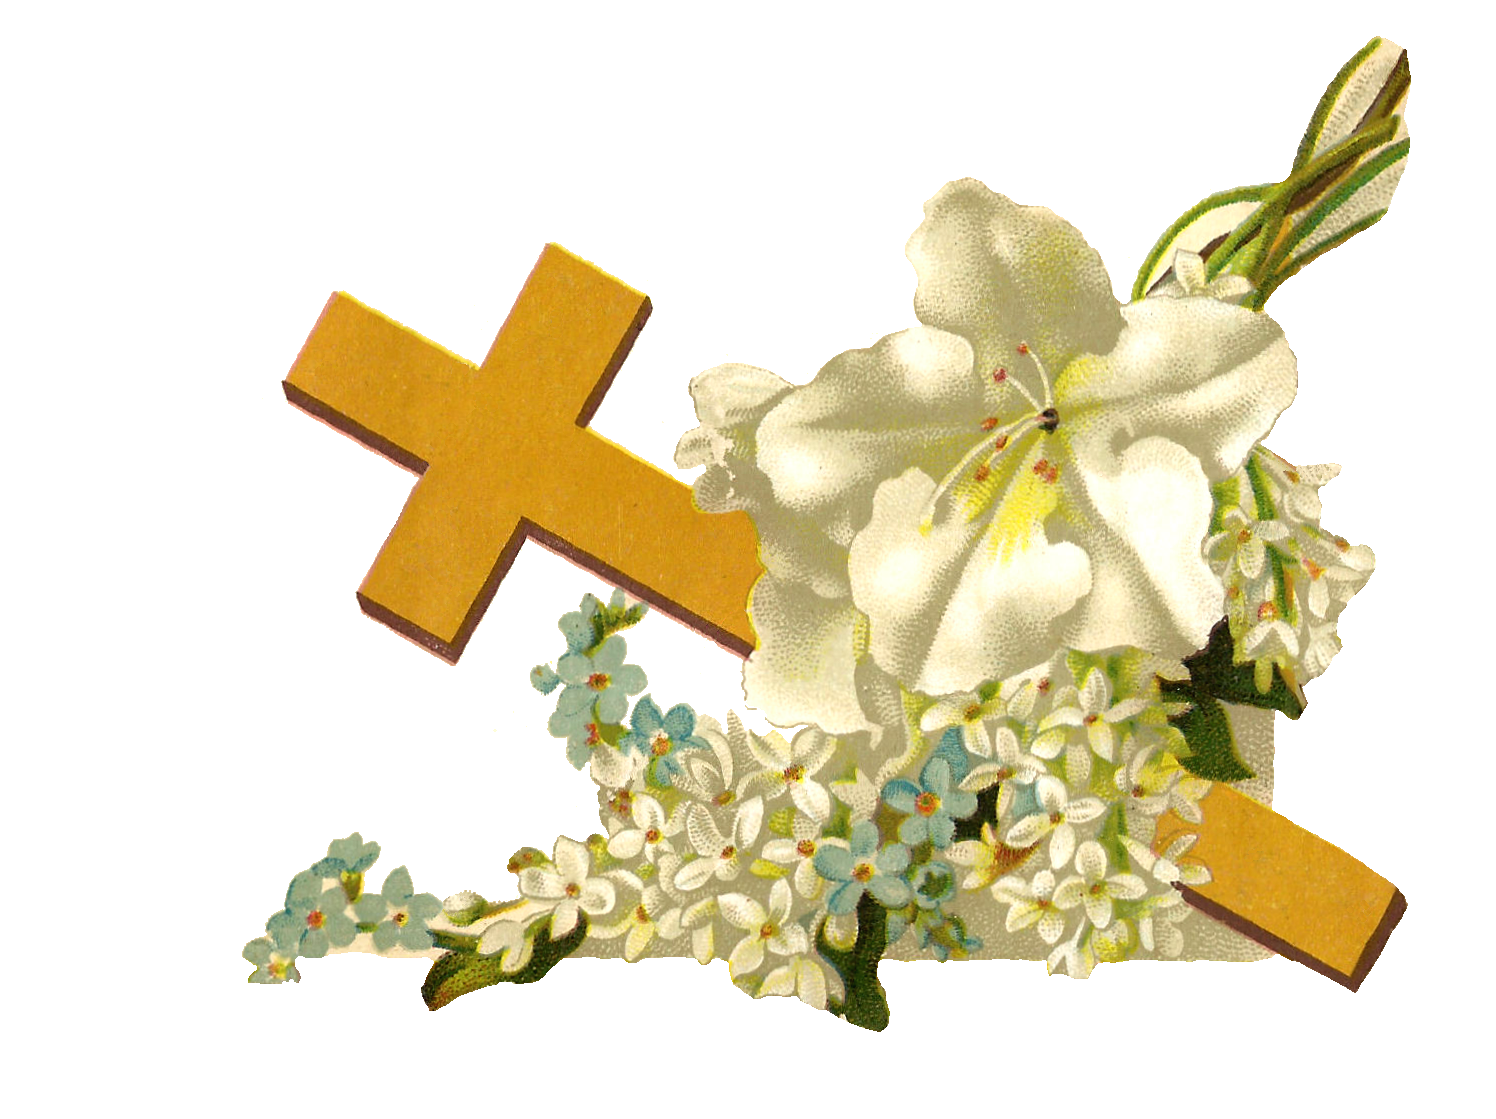 Easter cross clipart free clipart freeuse Antique Images: Free Religious Clip Art: Gold Cross and White ... clipart freeuse